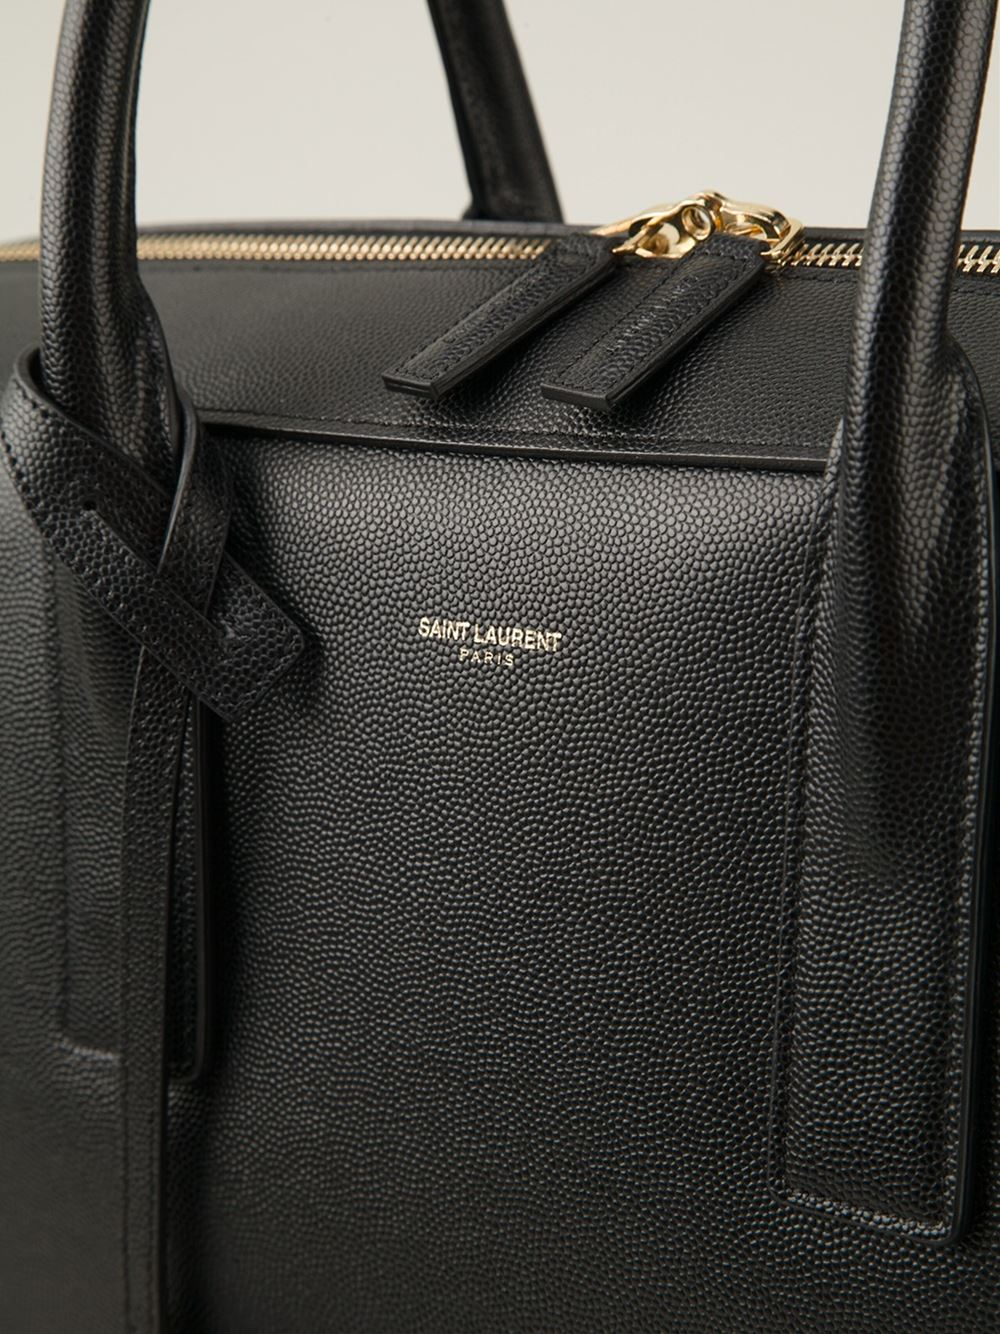 Saint laurent Museum Briefcase in Black for Men | Lyst